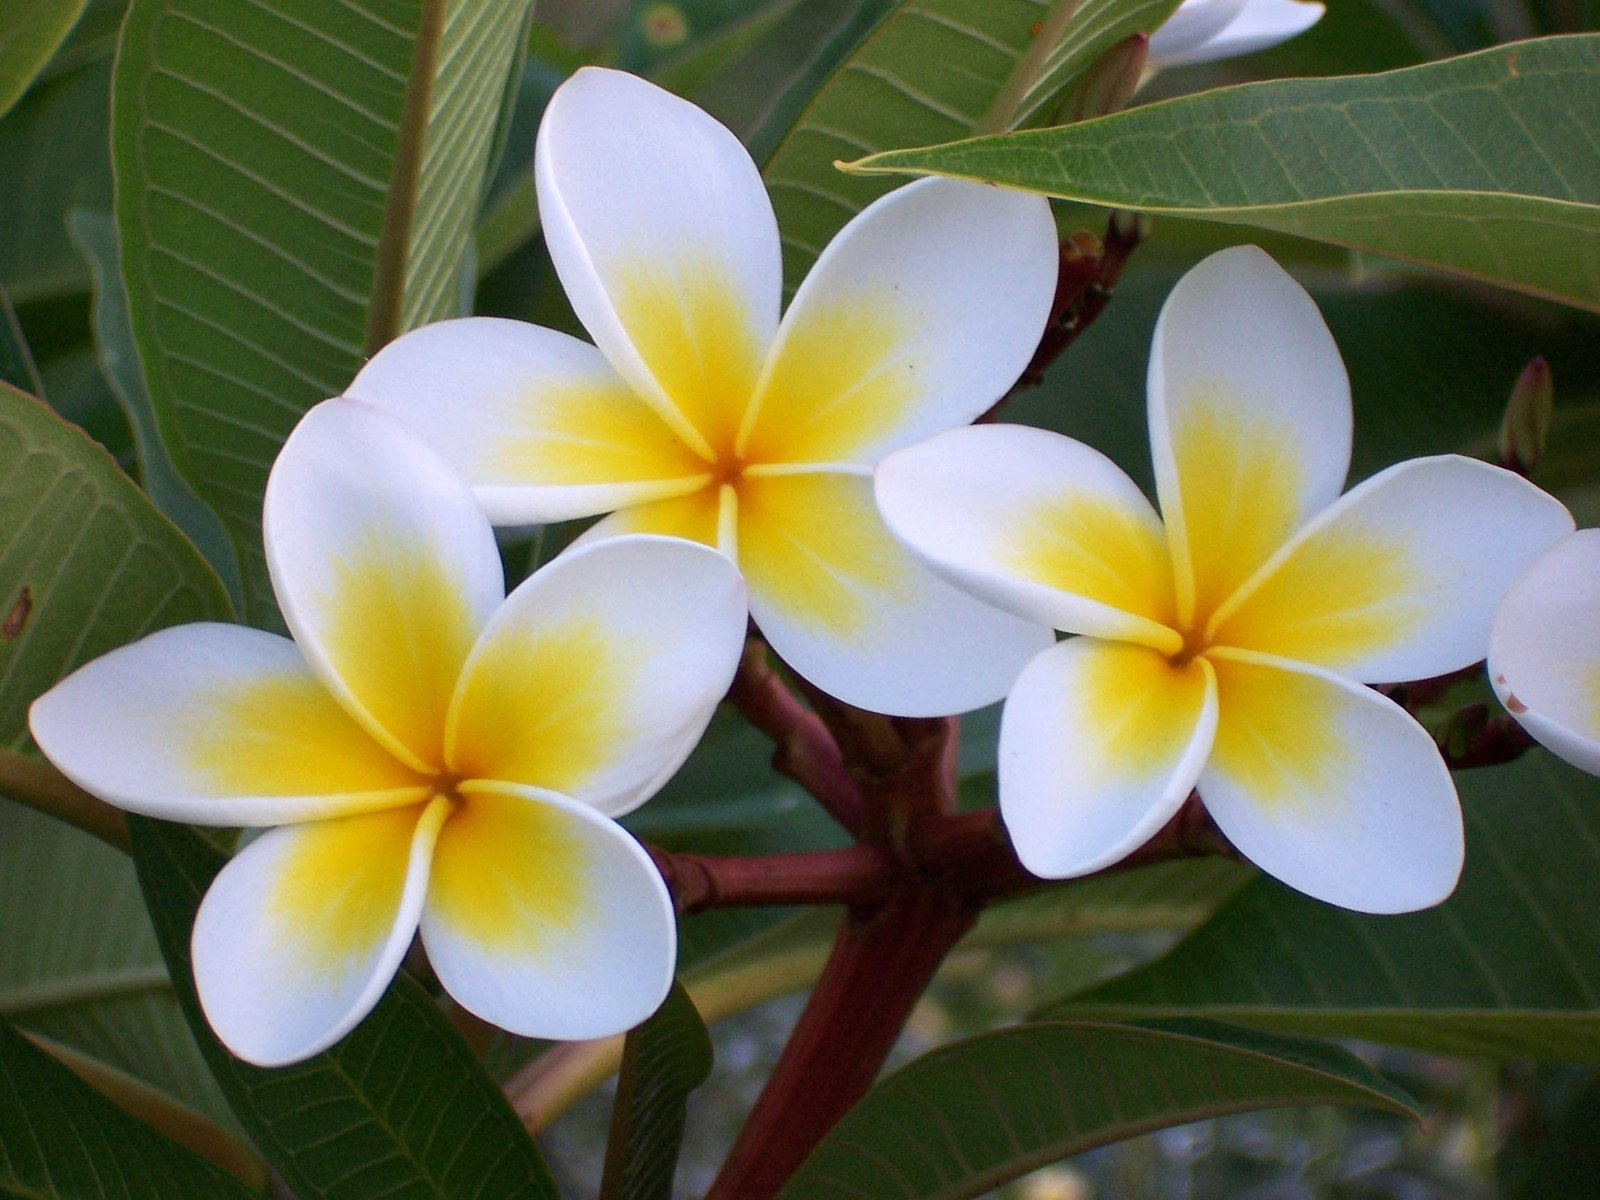 Frangipani A Beautiful And Exotic Flower With An Exquisite Aroma